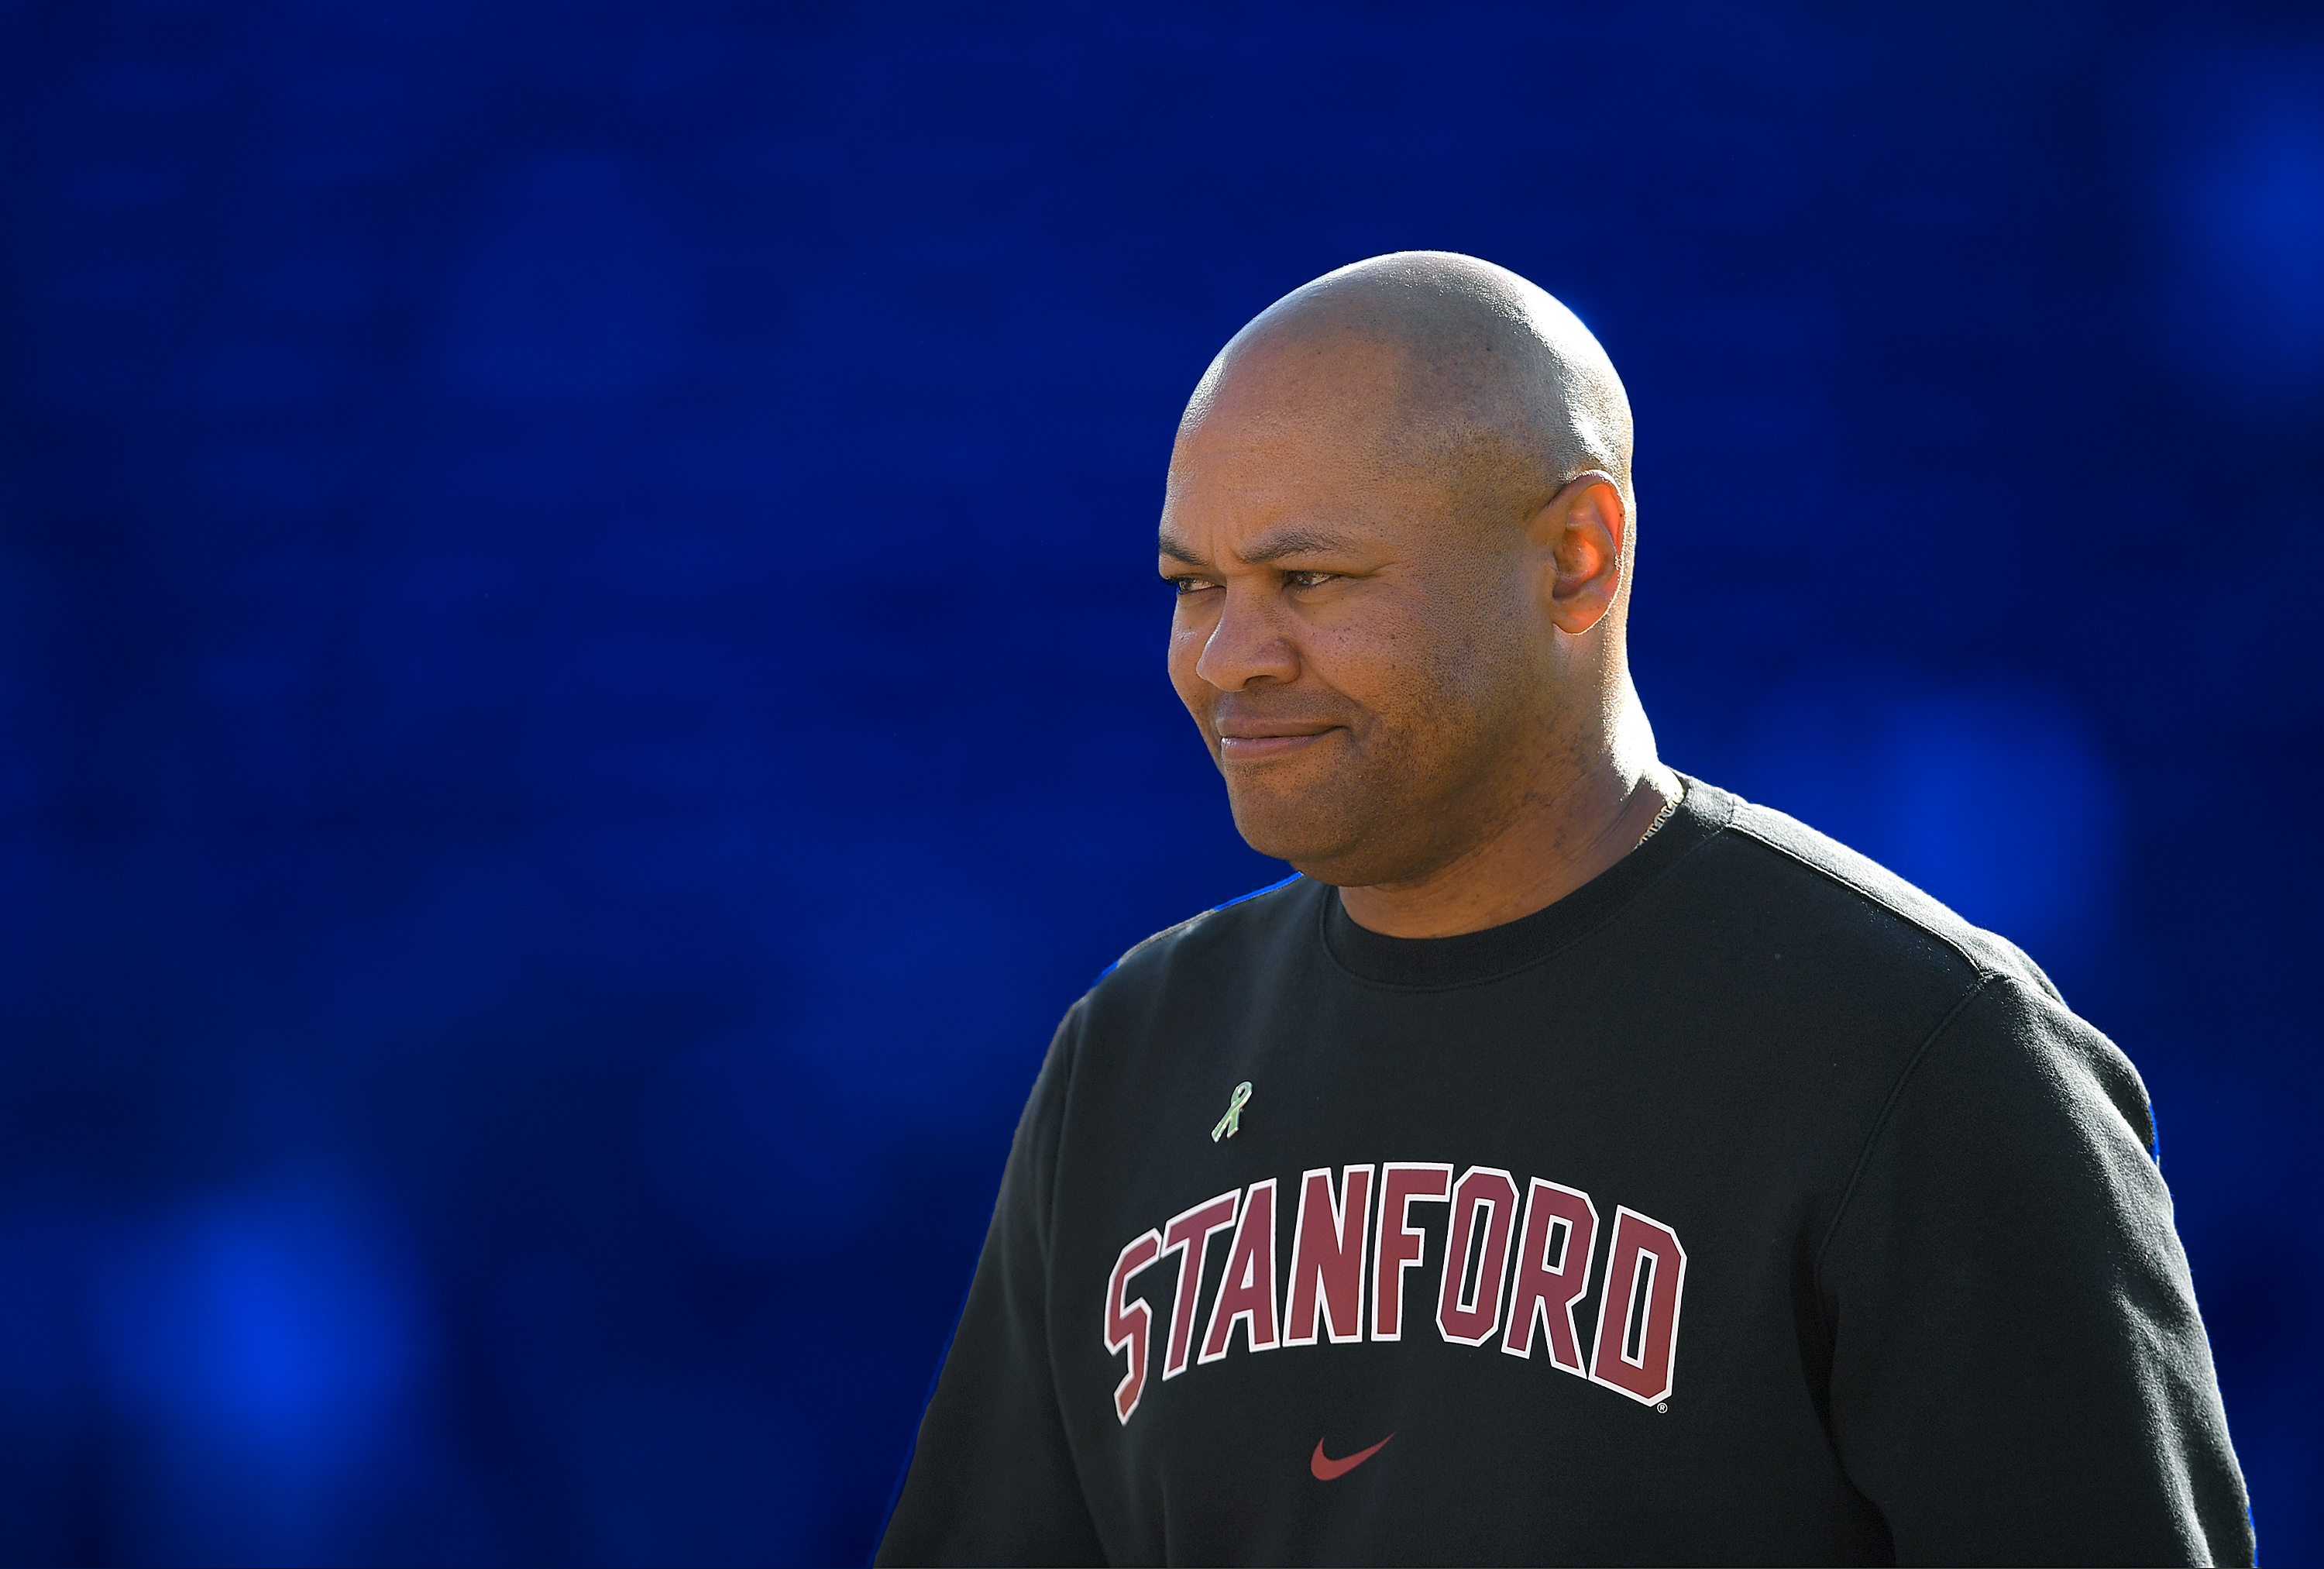 Stanford football coach David Shaw walks on the field before a game against USC in 2018.